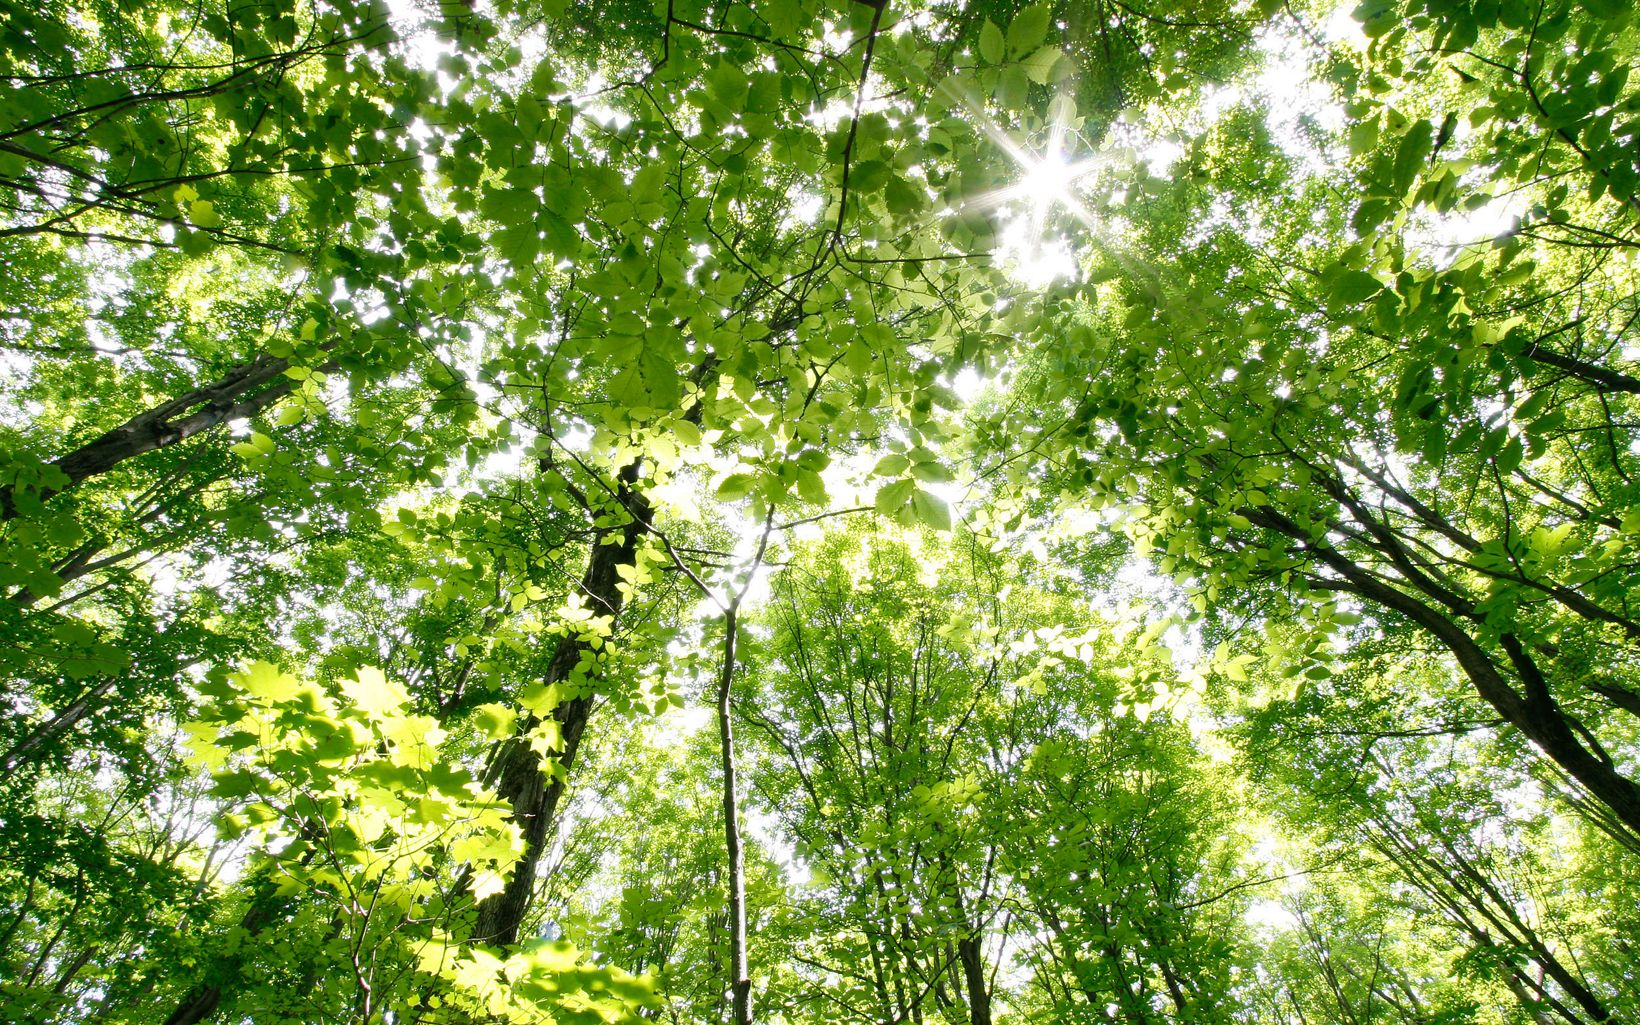 View looking up into the sunlit forest canopy.